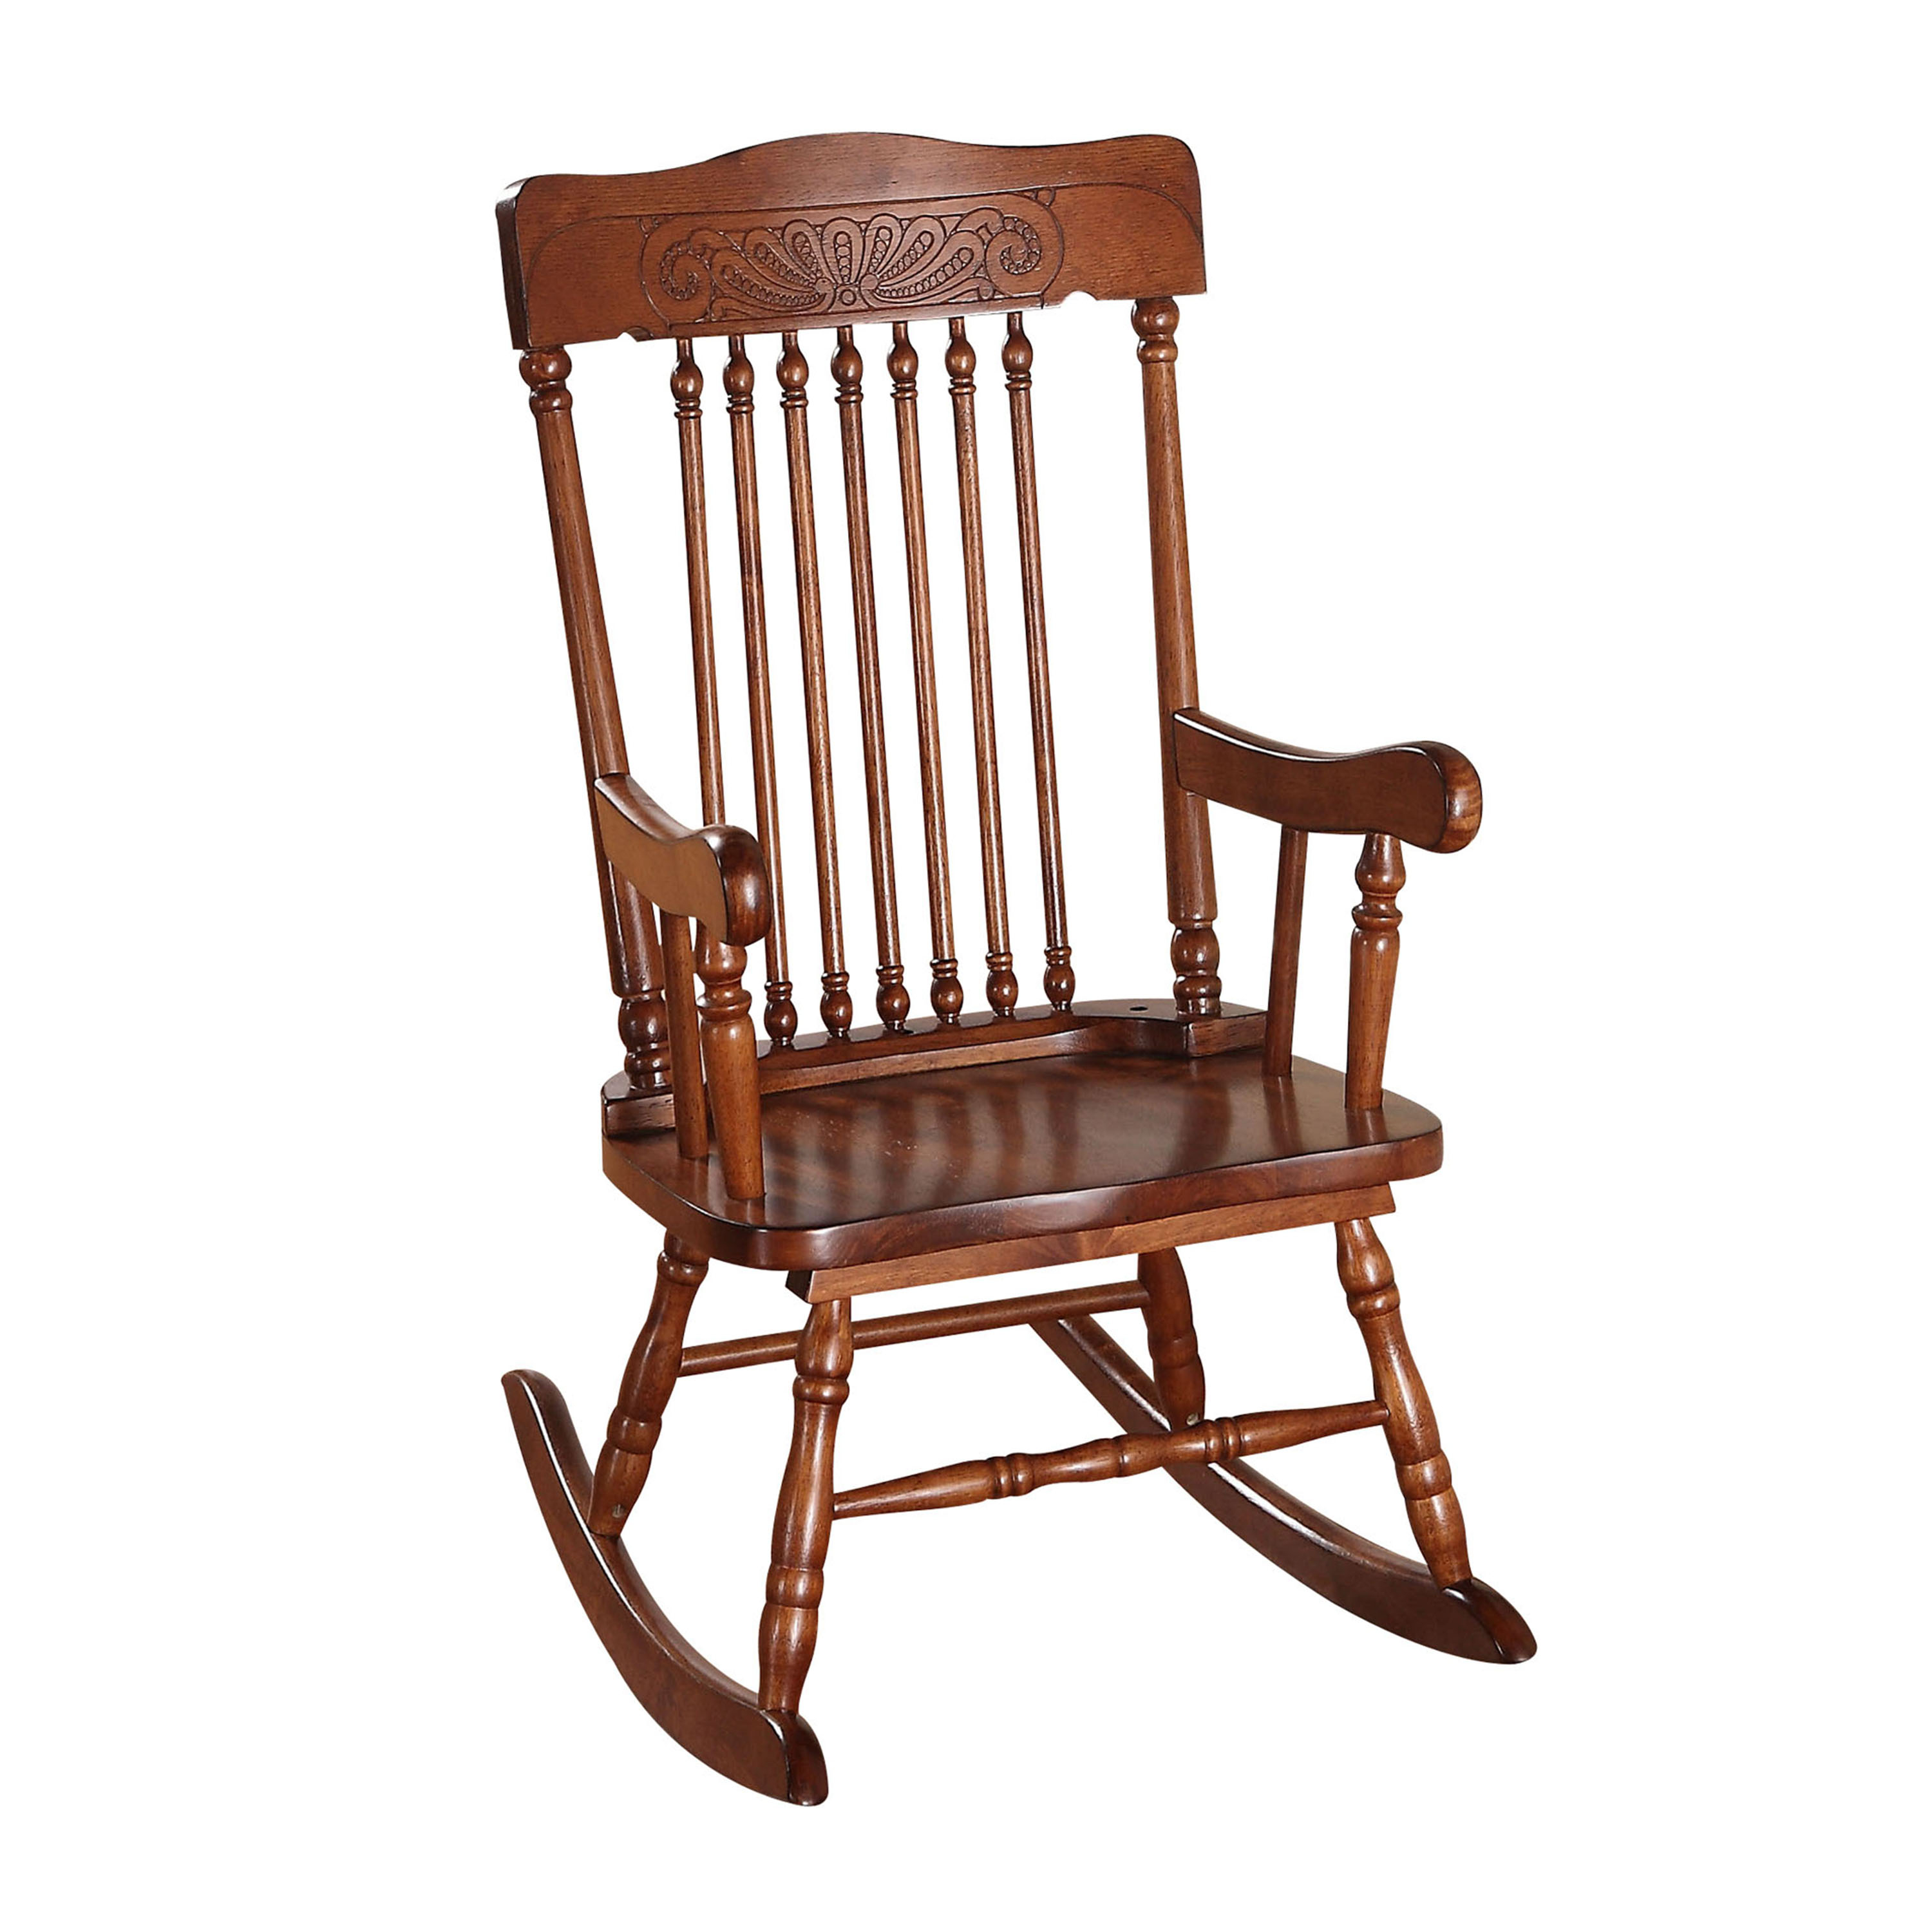 Inspiration about Details About Acme Aaro Youth Rocking Chair, Tobacco In Tobacco Brown Wooden Rocking Chairs (#3 of 20)